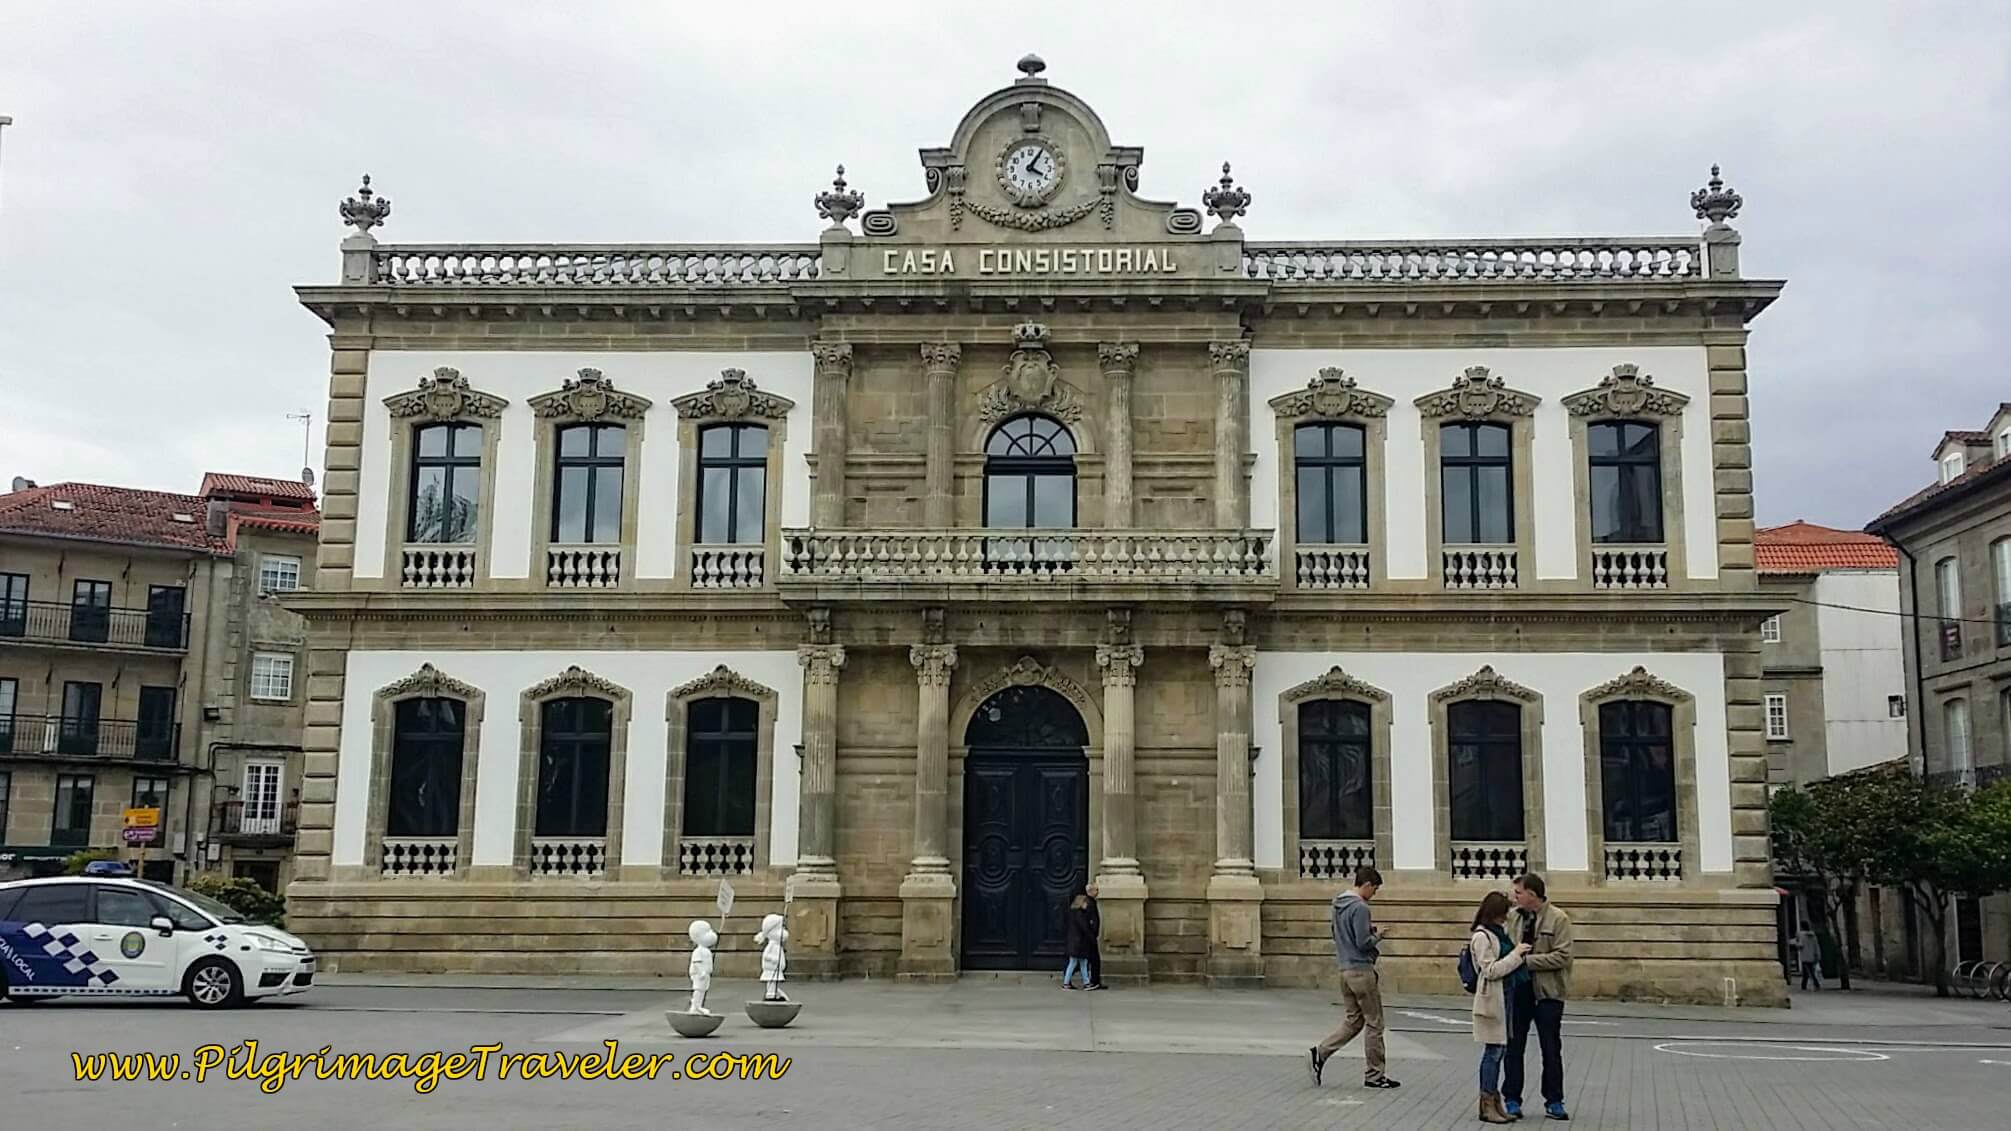 Casa Consistorial, the town hall of Pontevedra, day twenty-two on the Camino Portugués